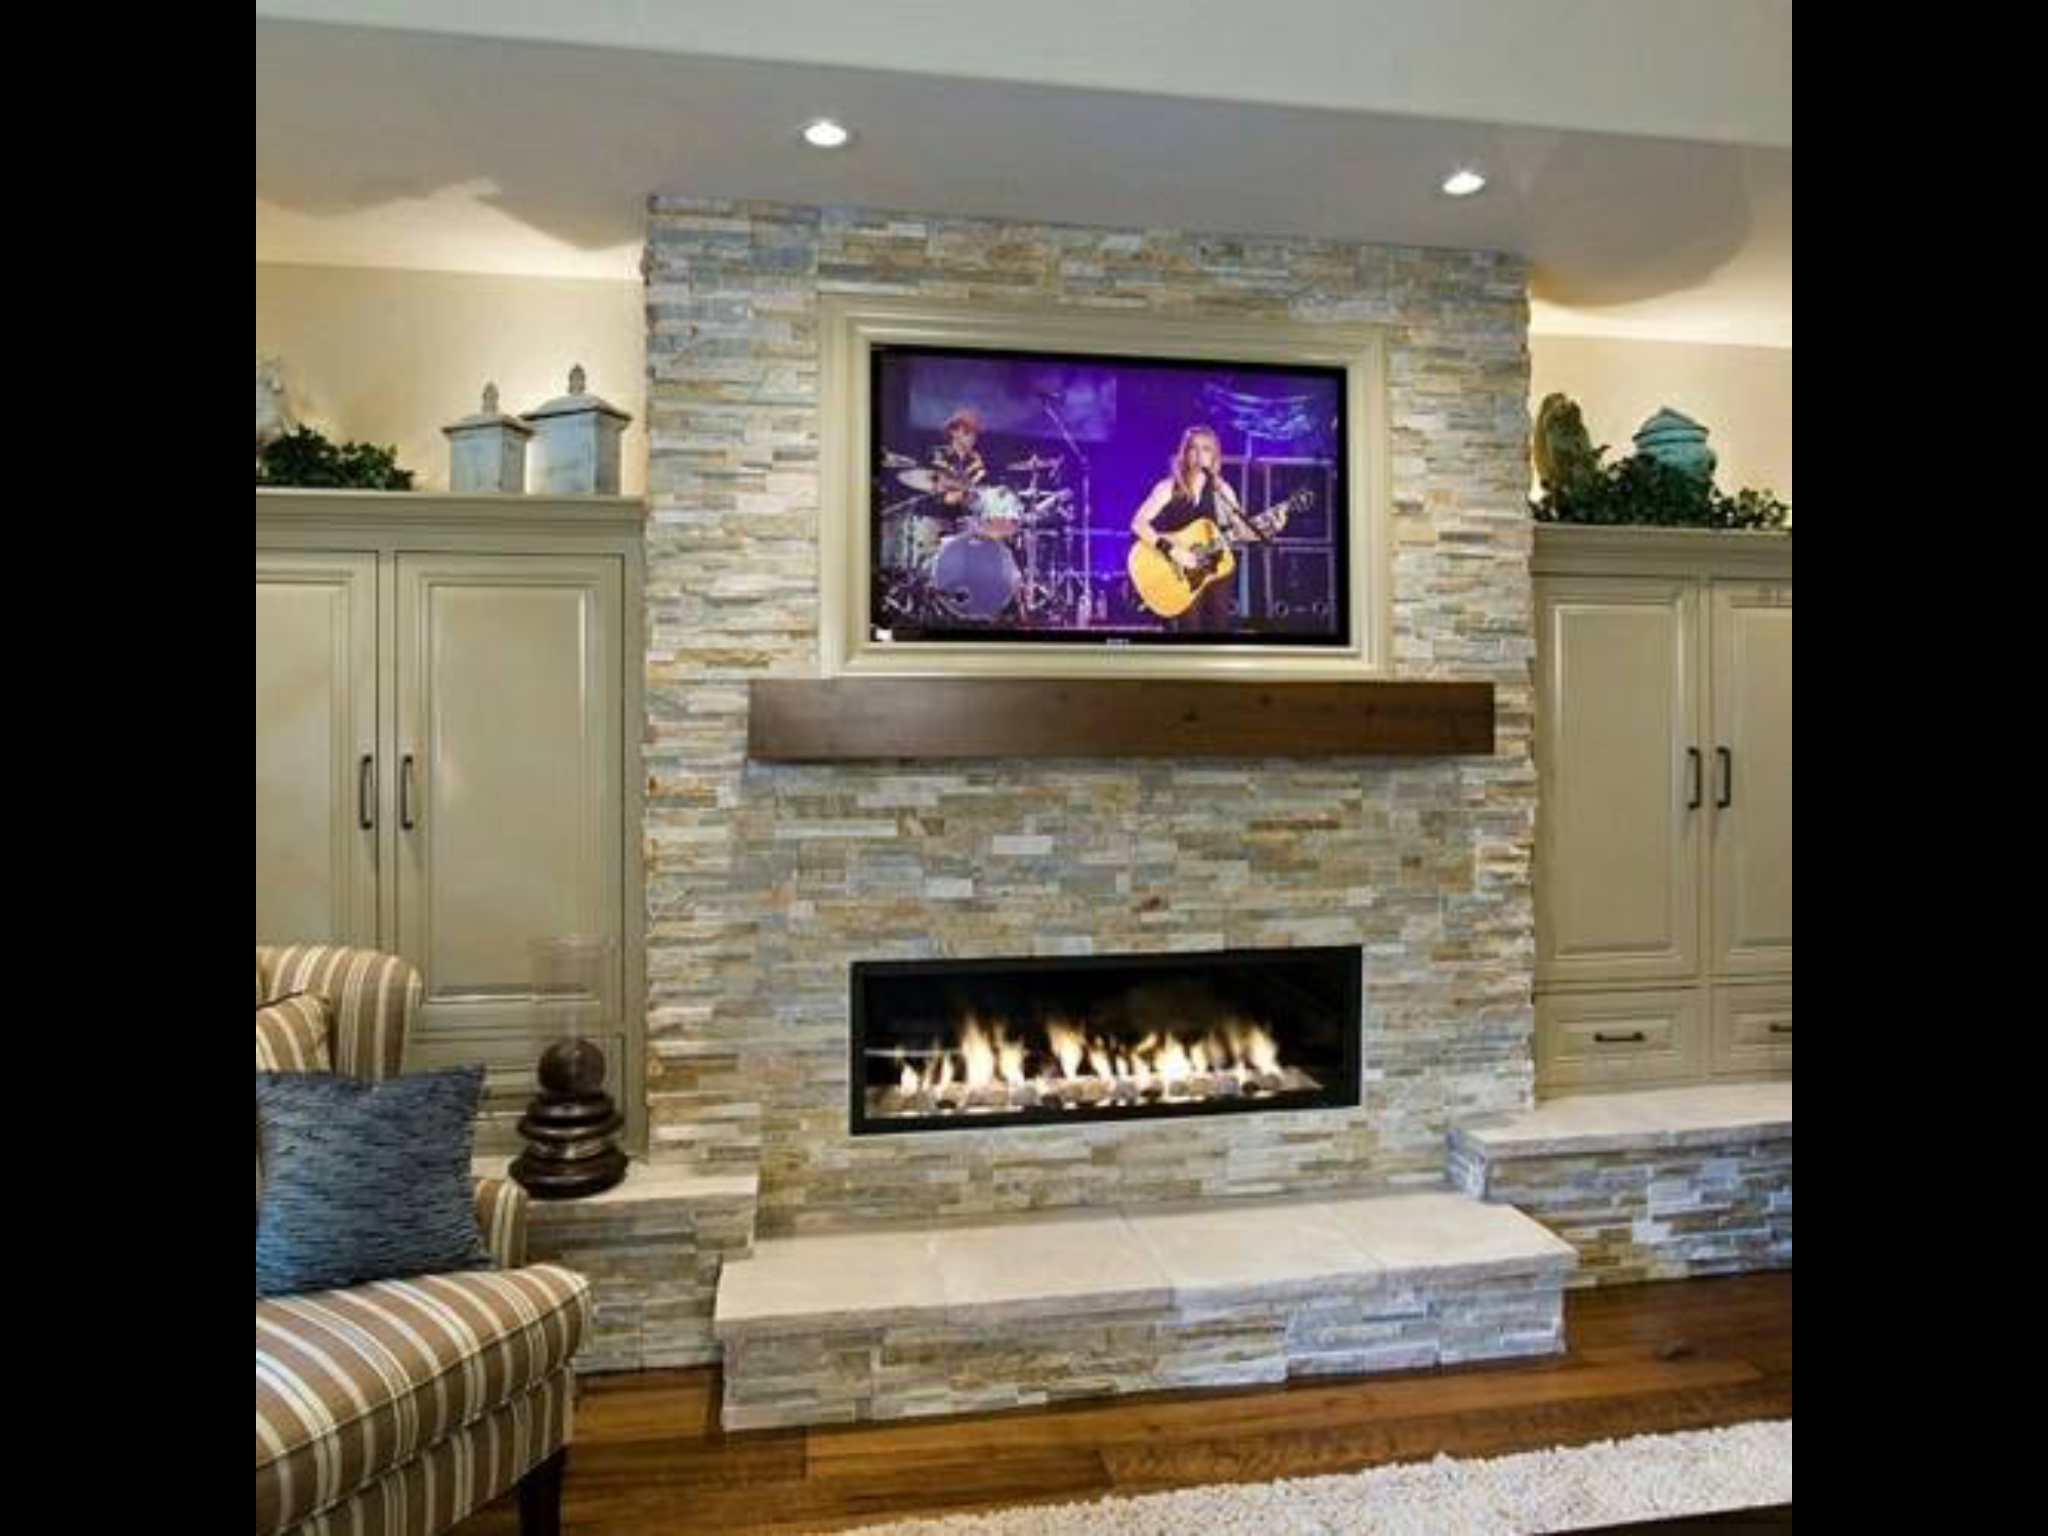 Could We Do Doors On Side Of Fireplace Leave Top W Pot Lights